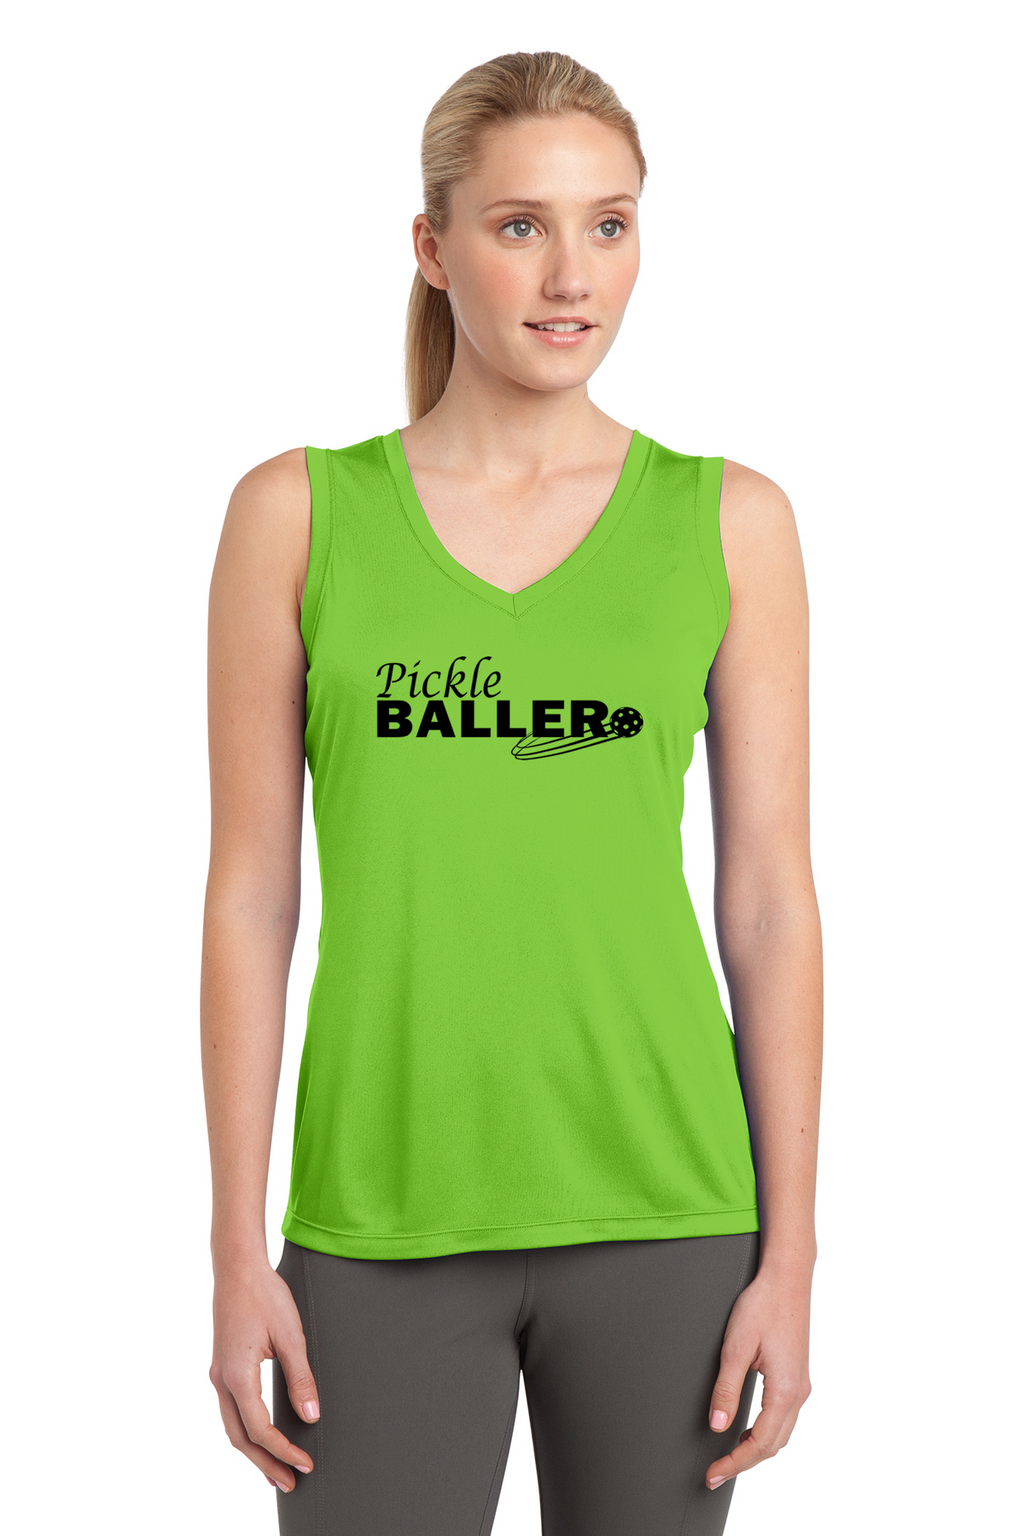 Ladies Sleeveless Performance Tee 'Pickleballer'